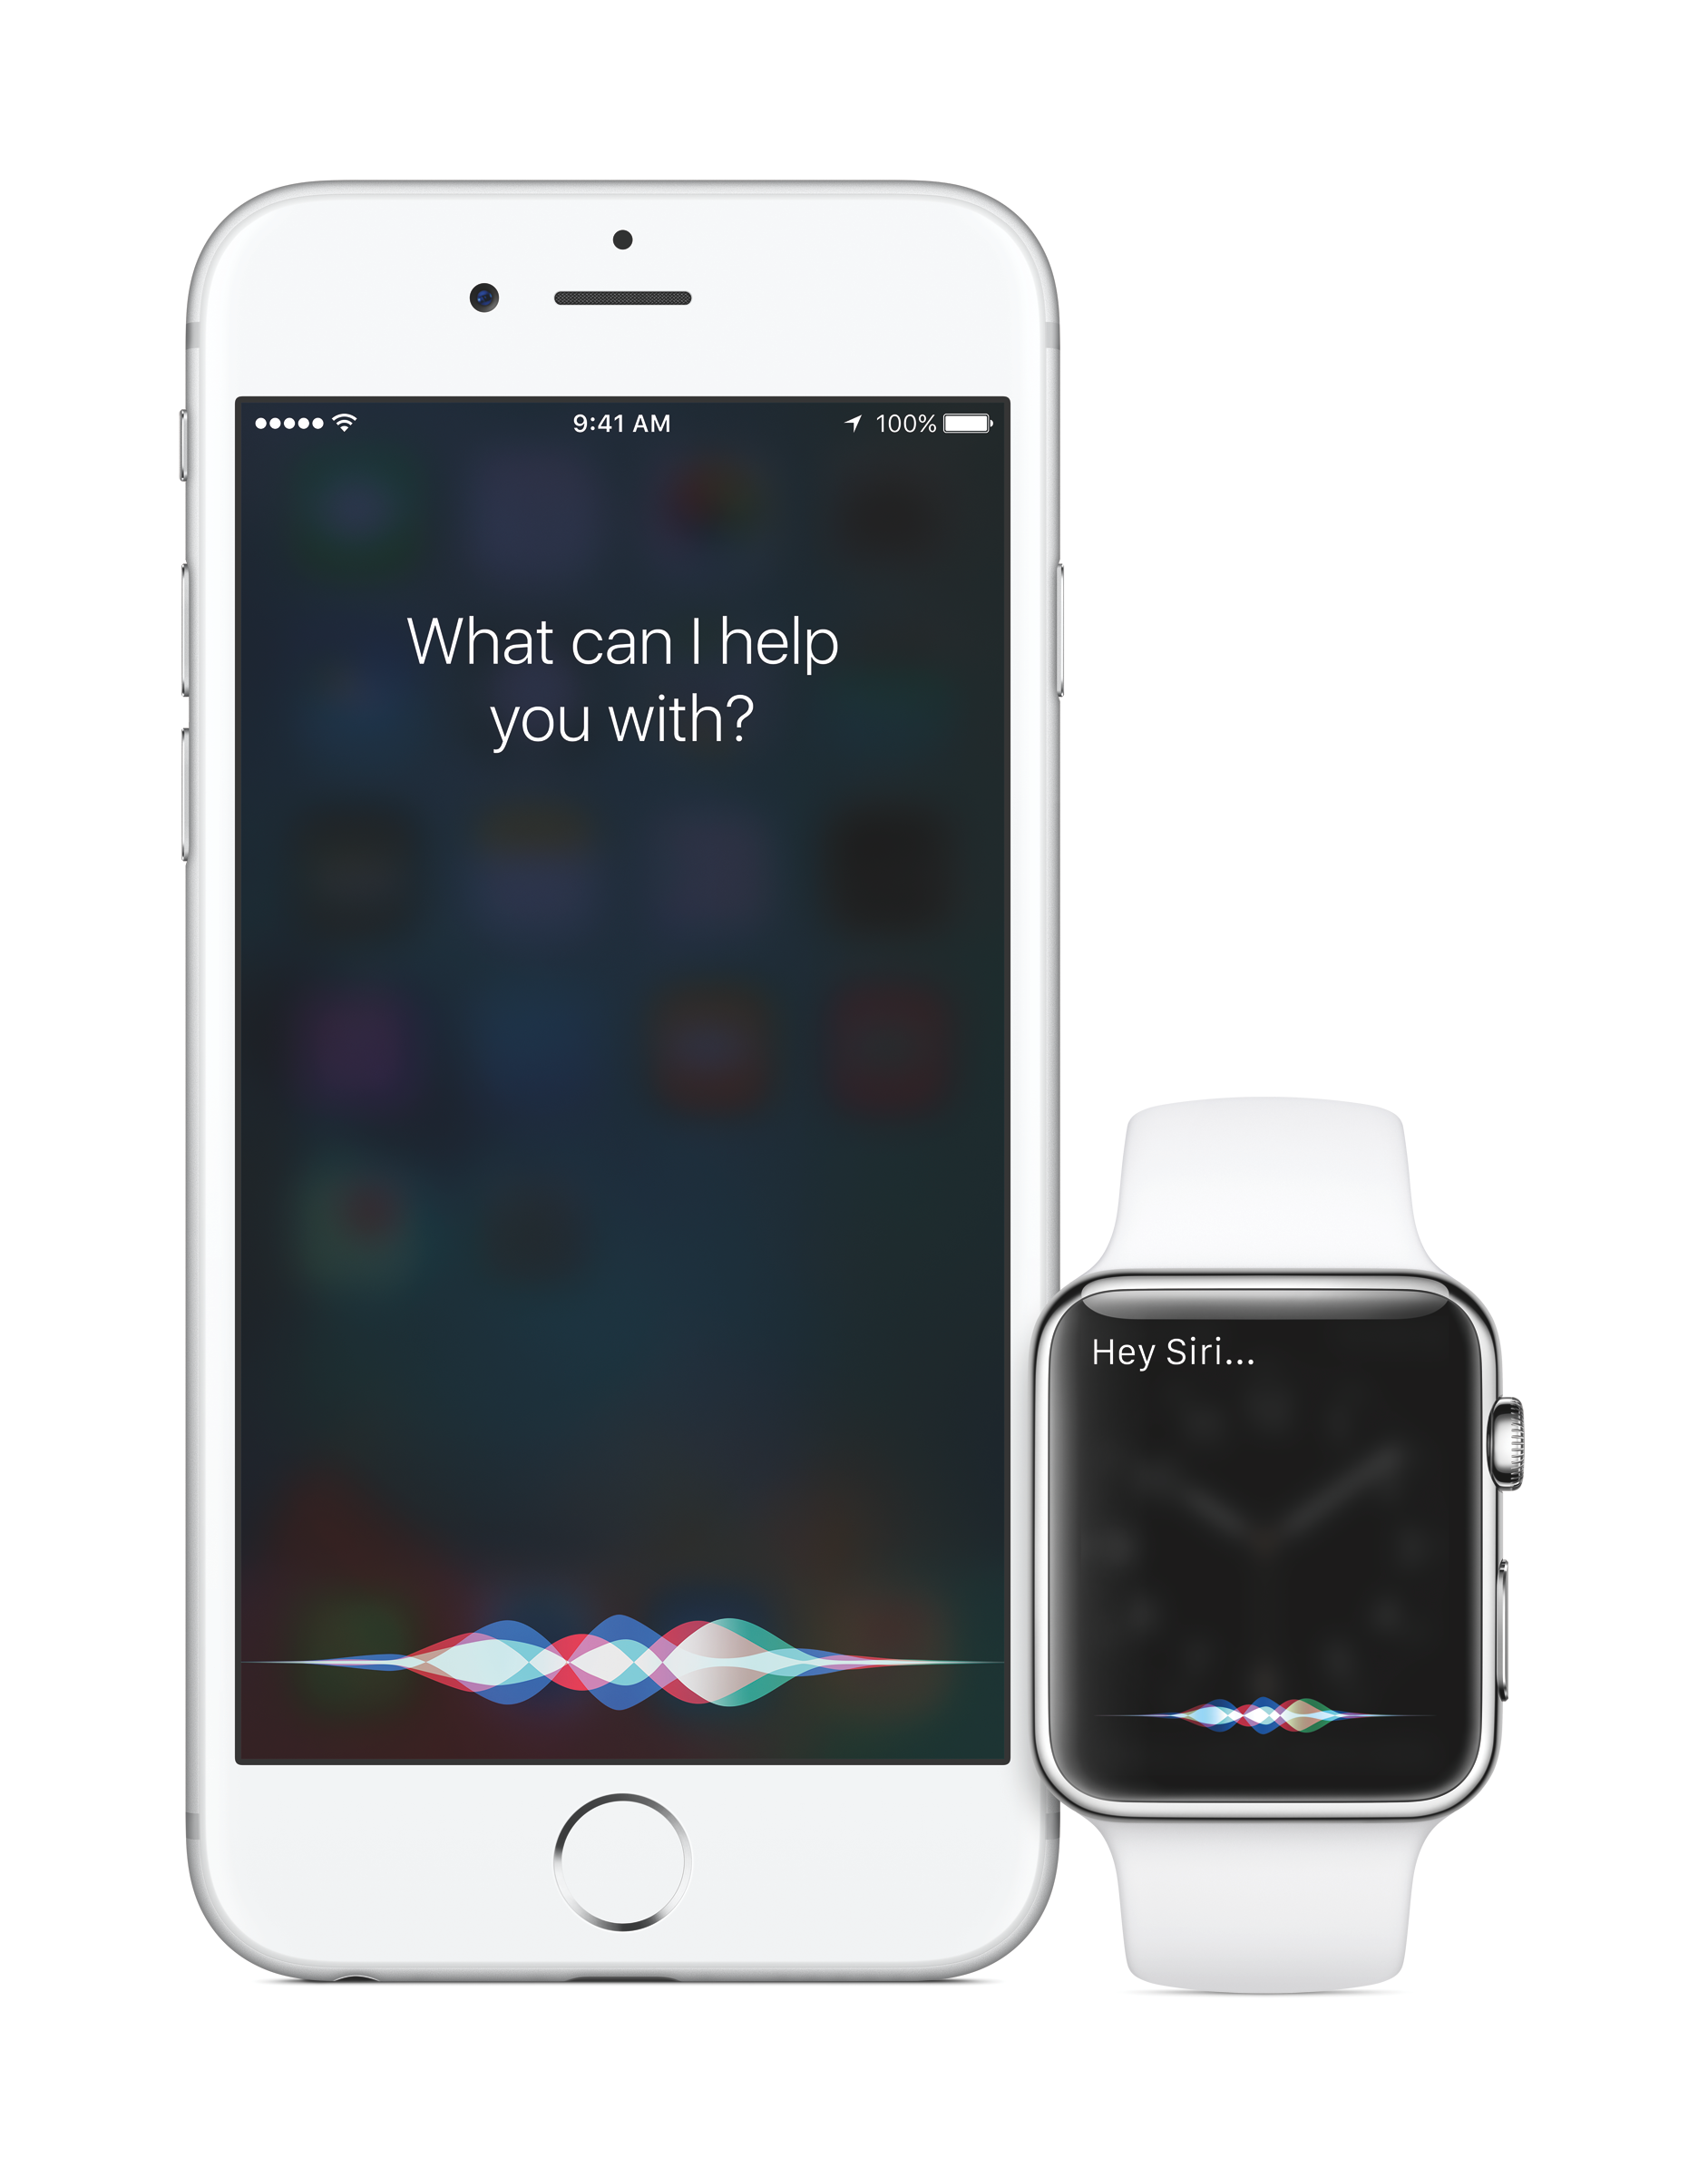 iOS9-6s-AppleWatch-Siri-PR-PRINT